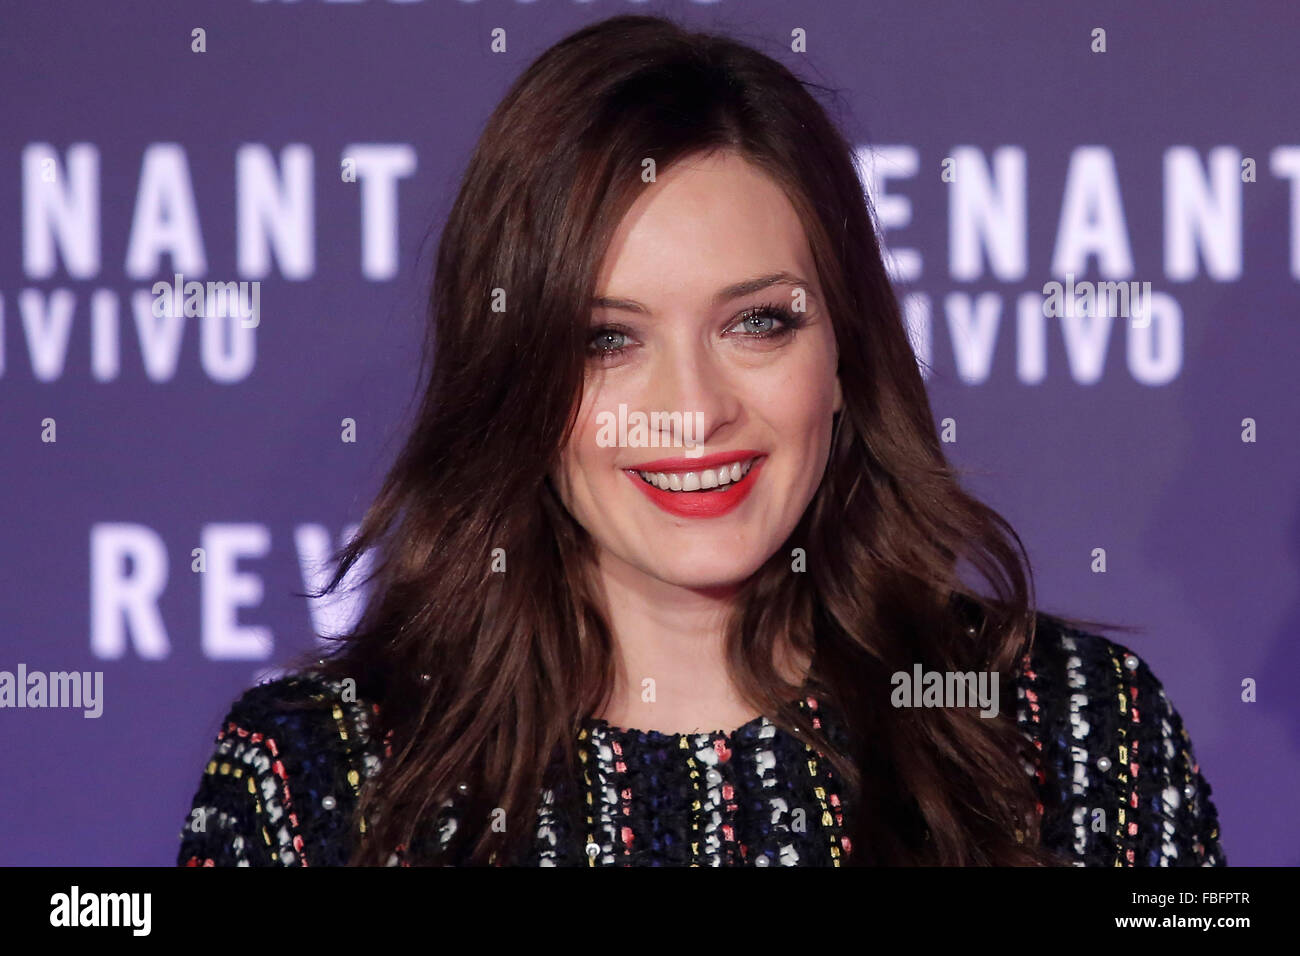 Rome, Italy. 15th Jan, 2016. Carolina Crescentini, Casa del Cinema. Redivivo Anteprima. Revenant Red Carpet Premiere. - Stock Image